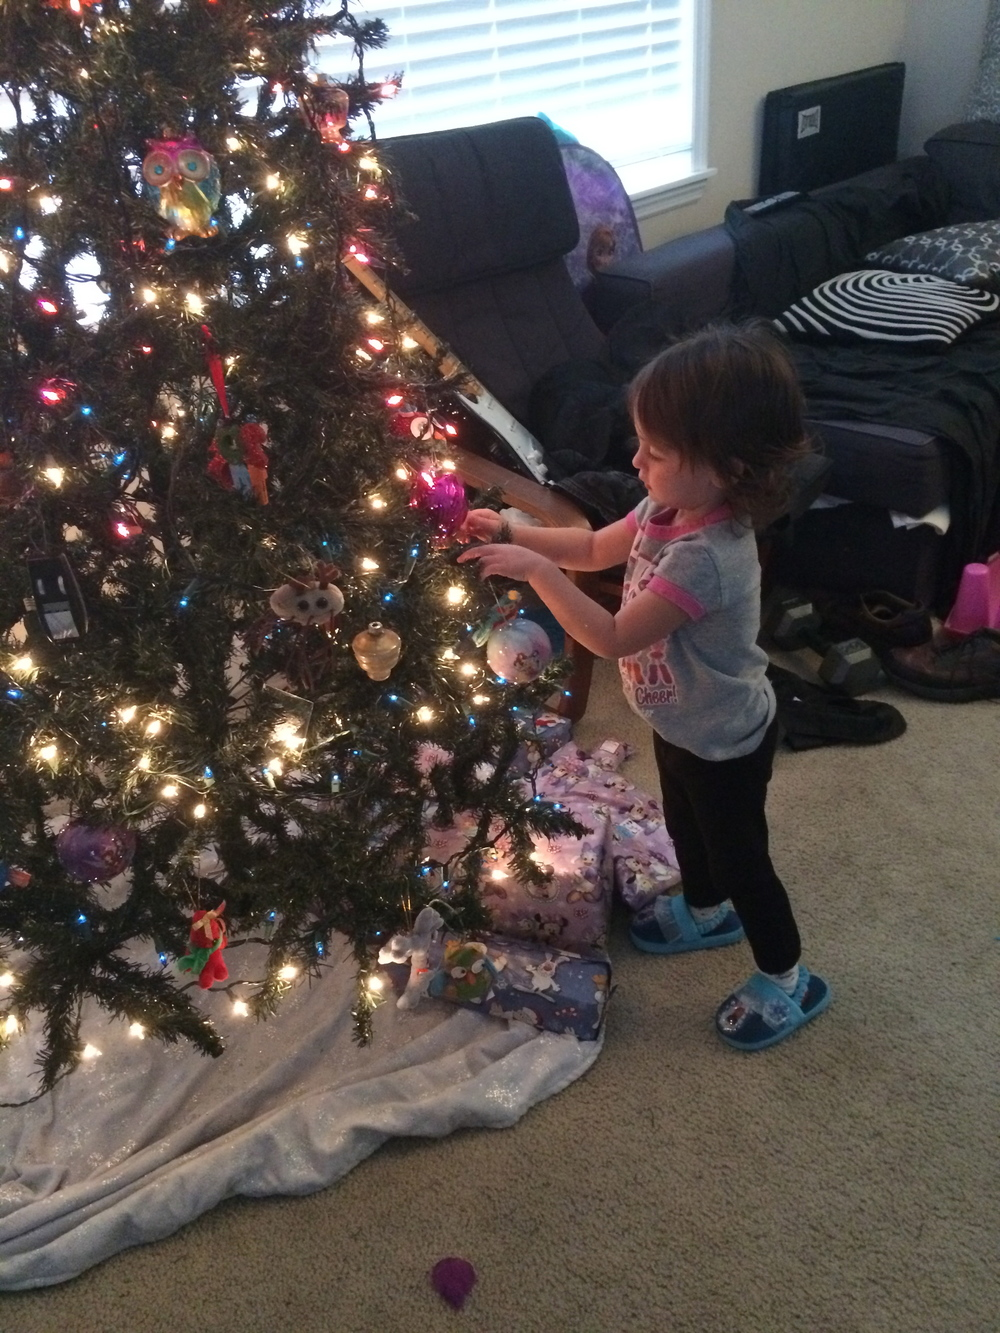 Only sturdy ornaments allowed within toddler reach!